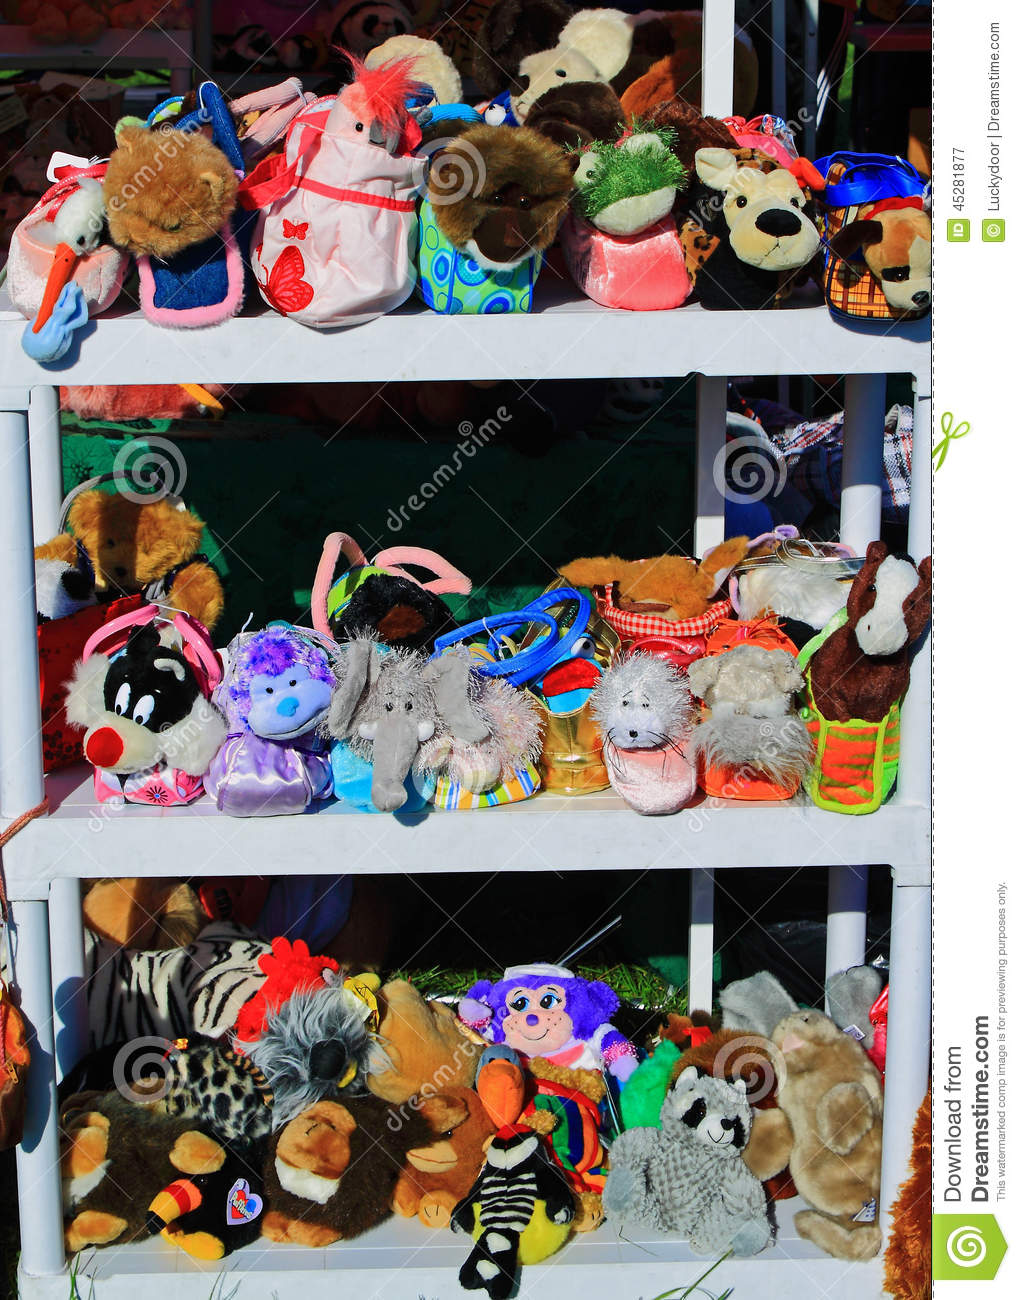 Stuffed Toys Stock Image Image Of Lots, Shelves, Colorful